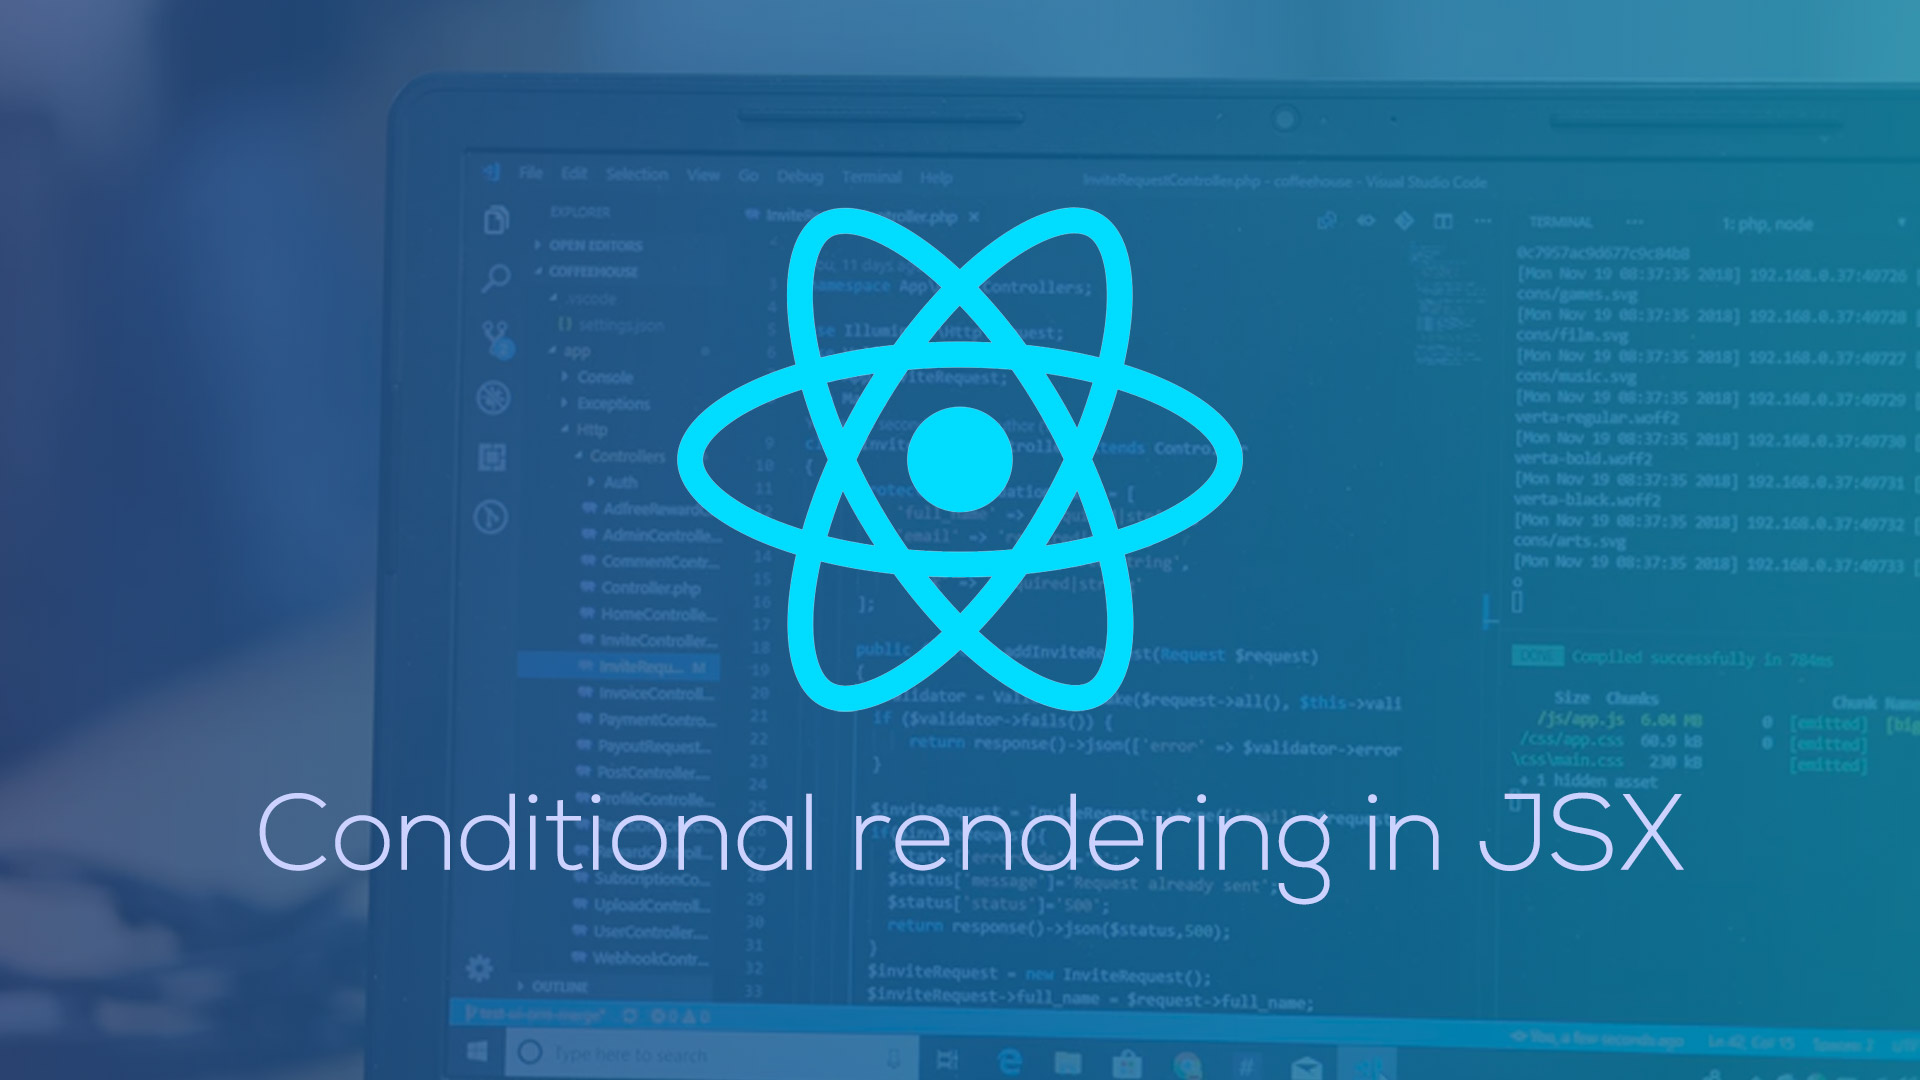 5 simple way for conditional rendering in JSX